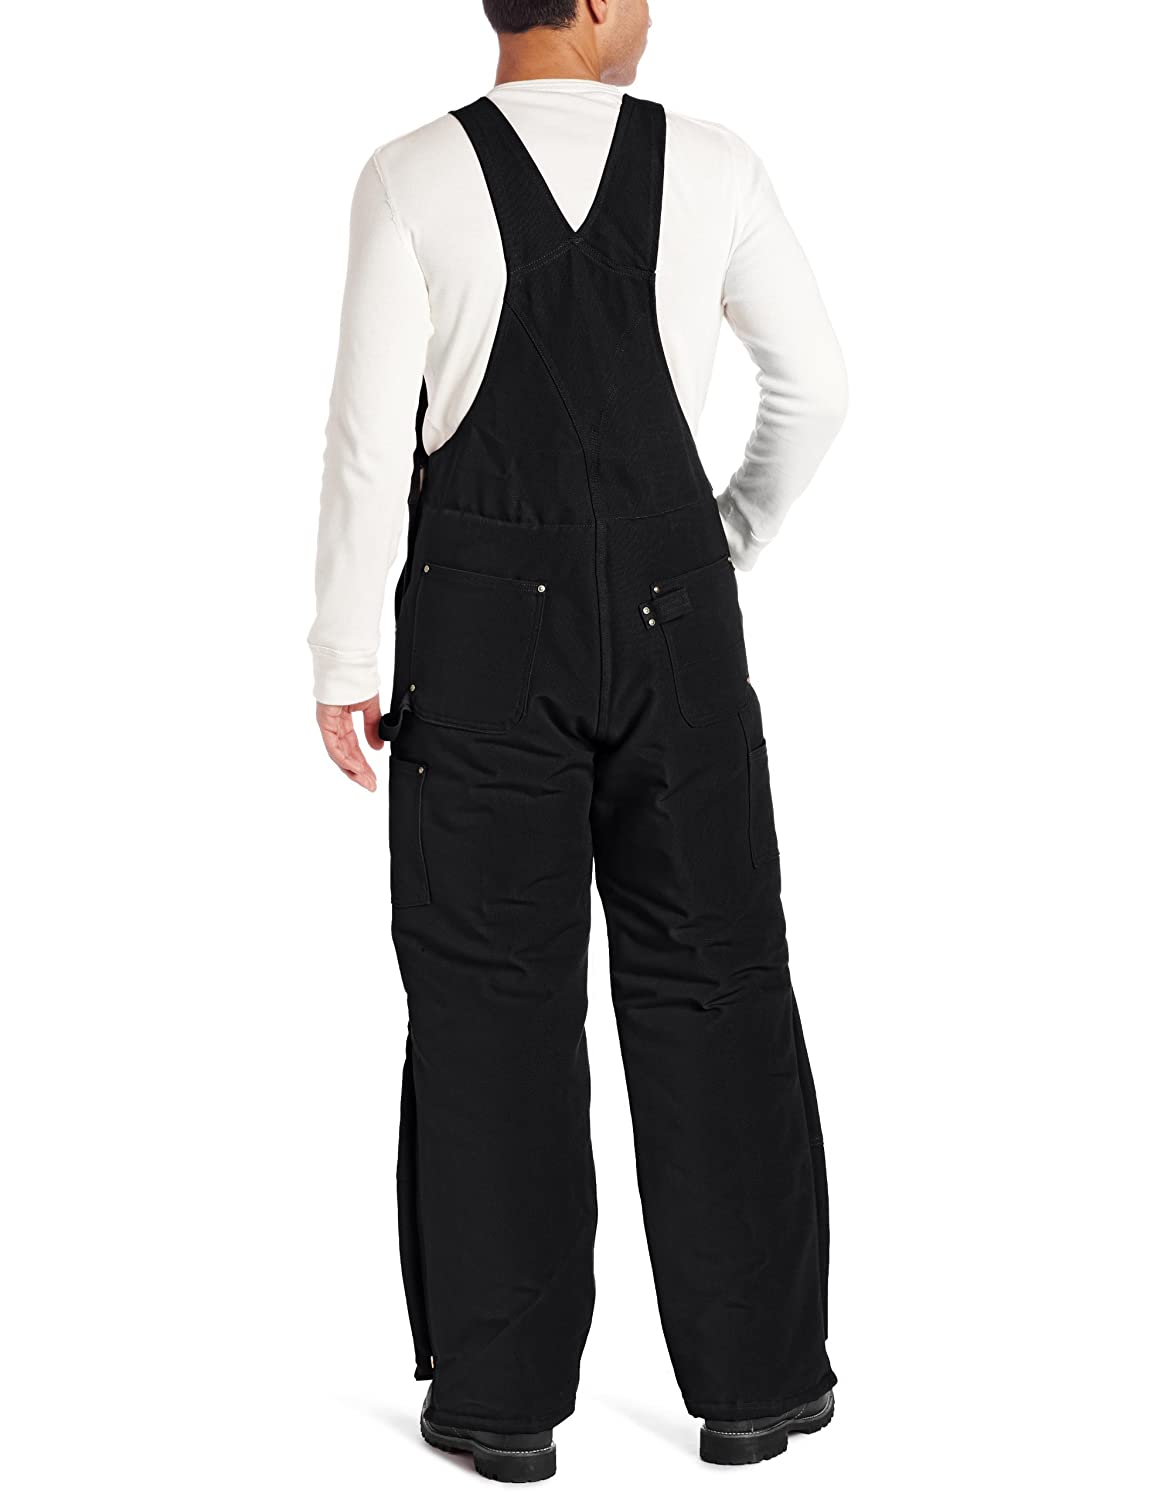 a0ba6c1a12479 Carhartt .R02.BLK.S387 Duck Bib Overall, Quilt Lined, W30/L30, Black:  Amazon.co.uk: Welcome